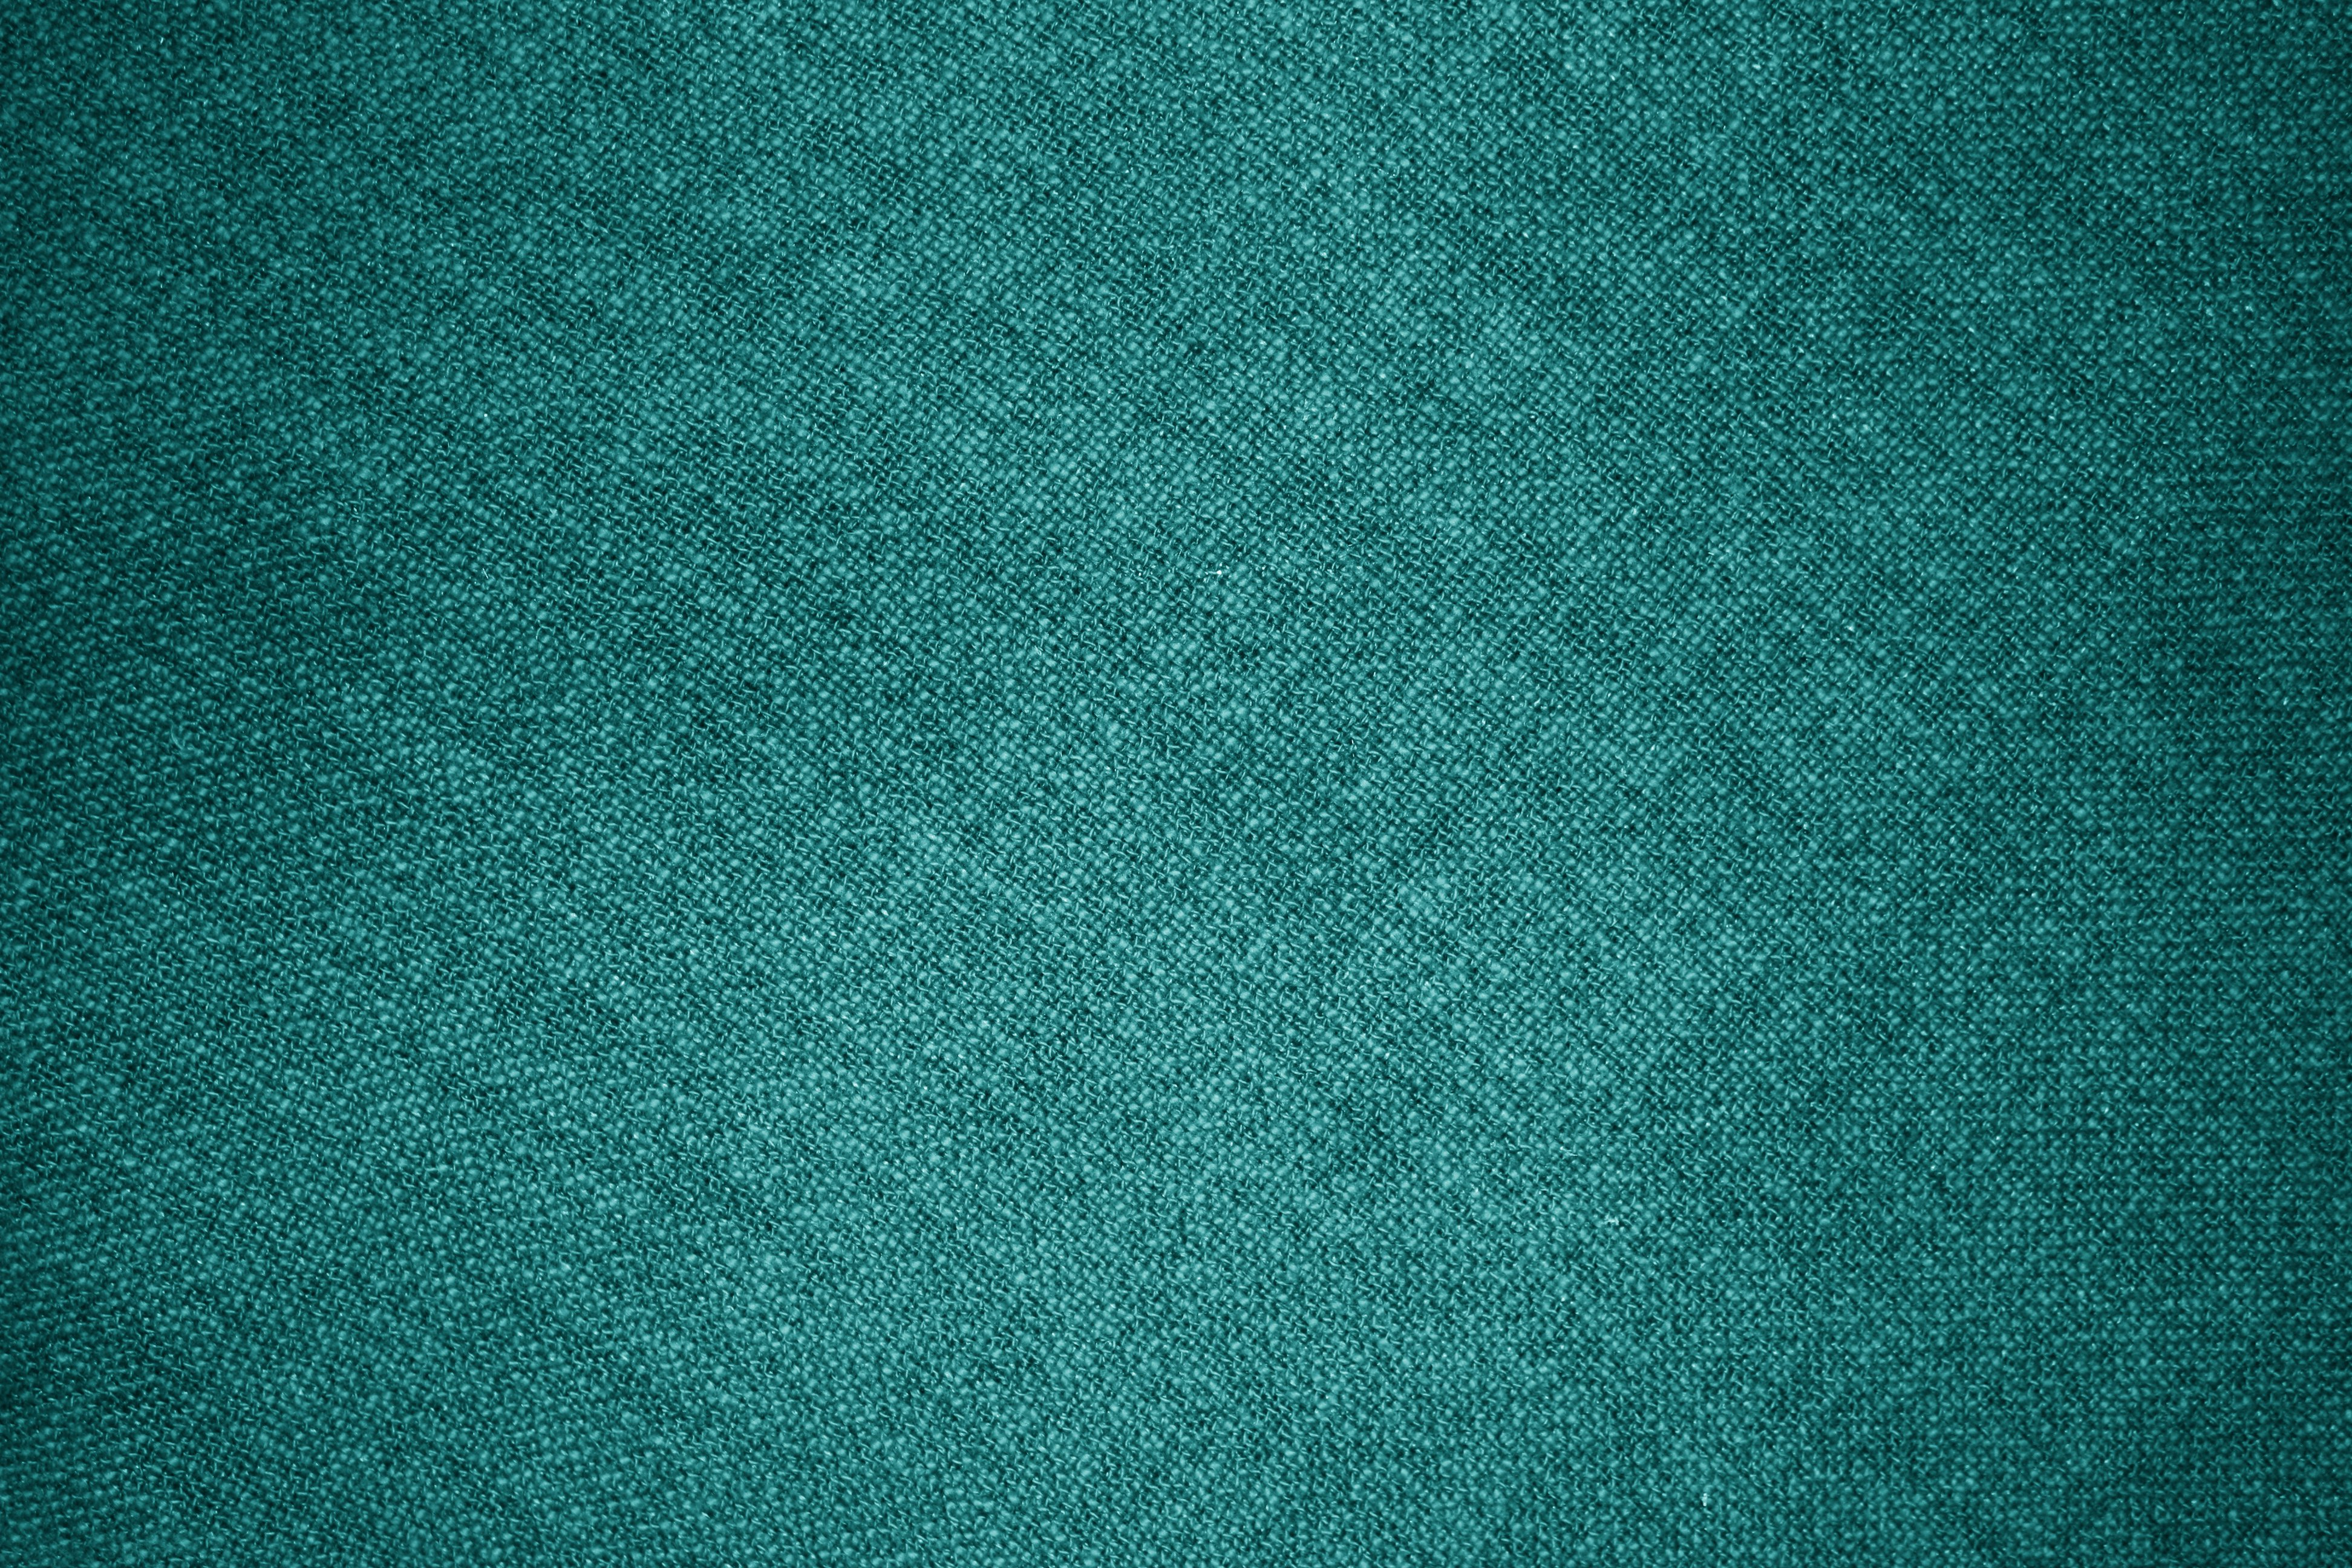 teal vintage texture wide wallpaper 27843